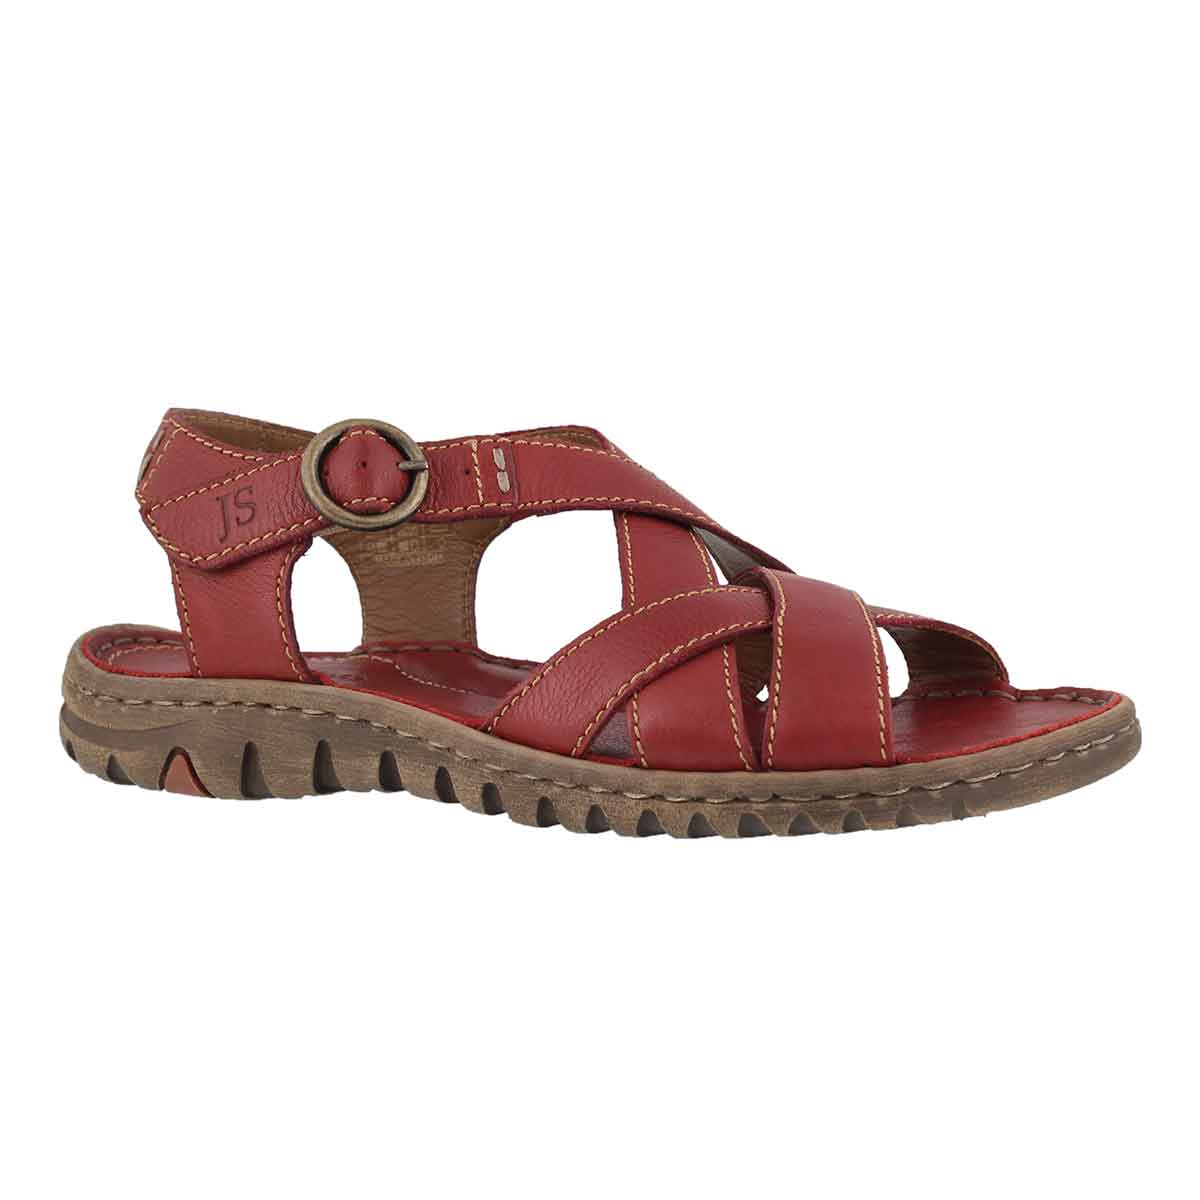 Women's LUCIA 01 red casual sandals